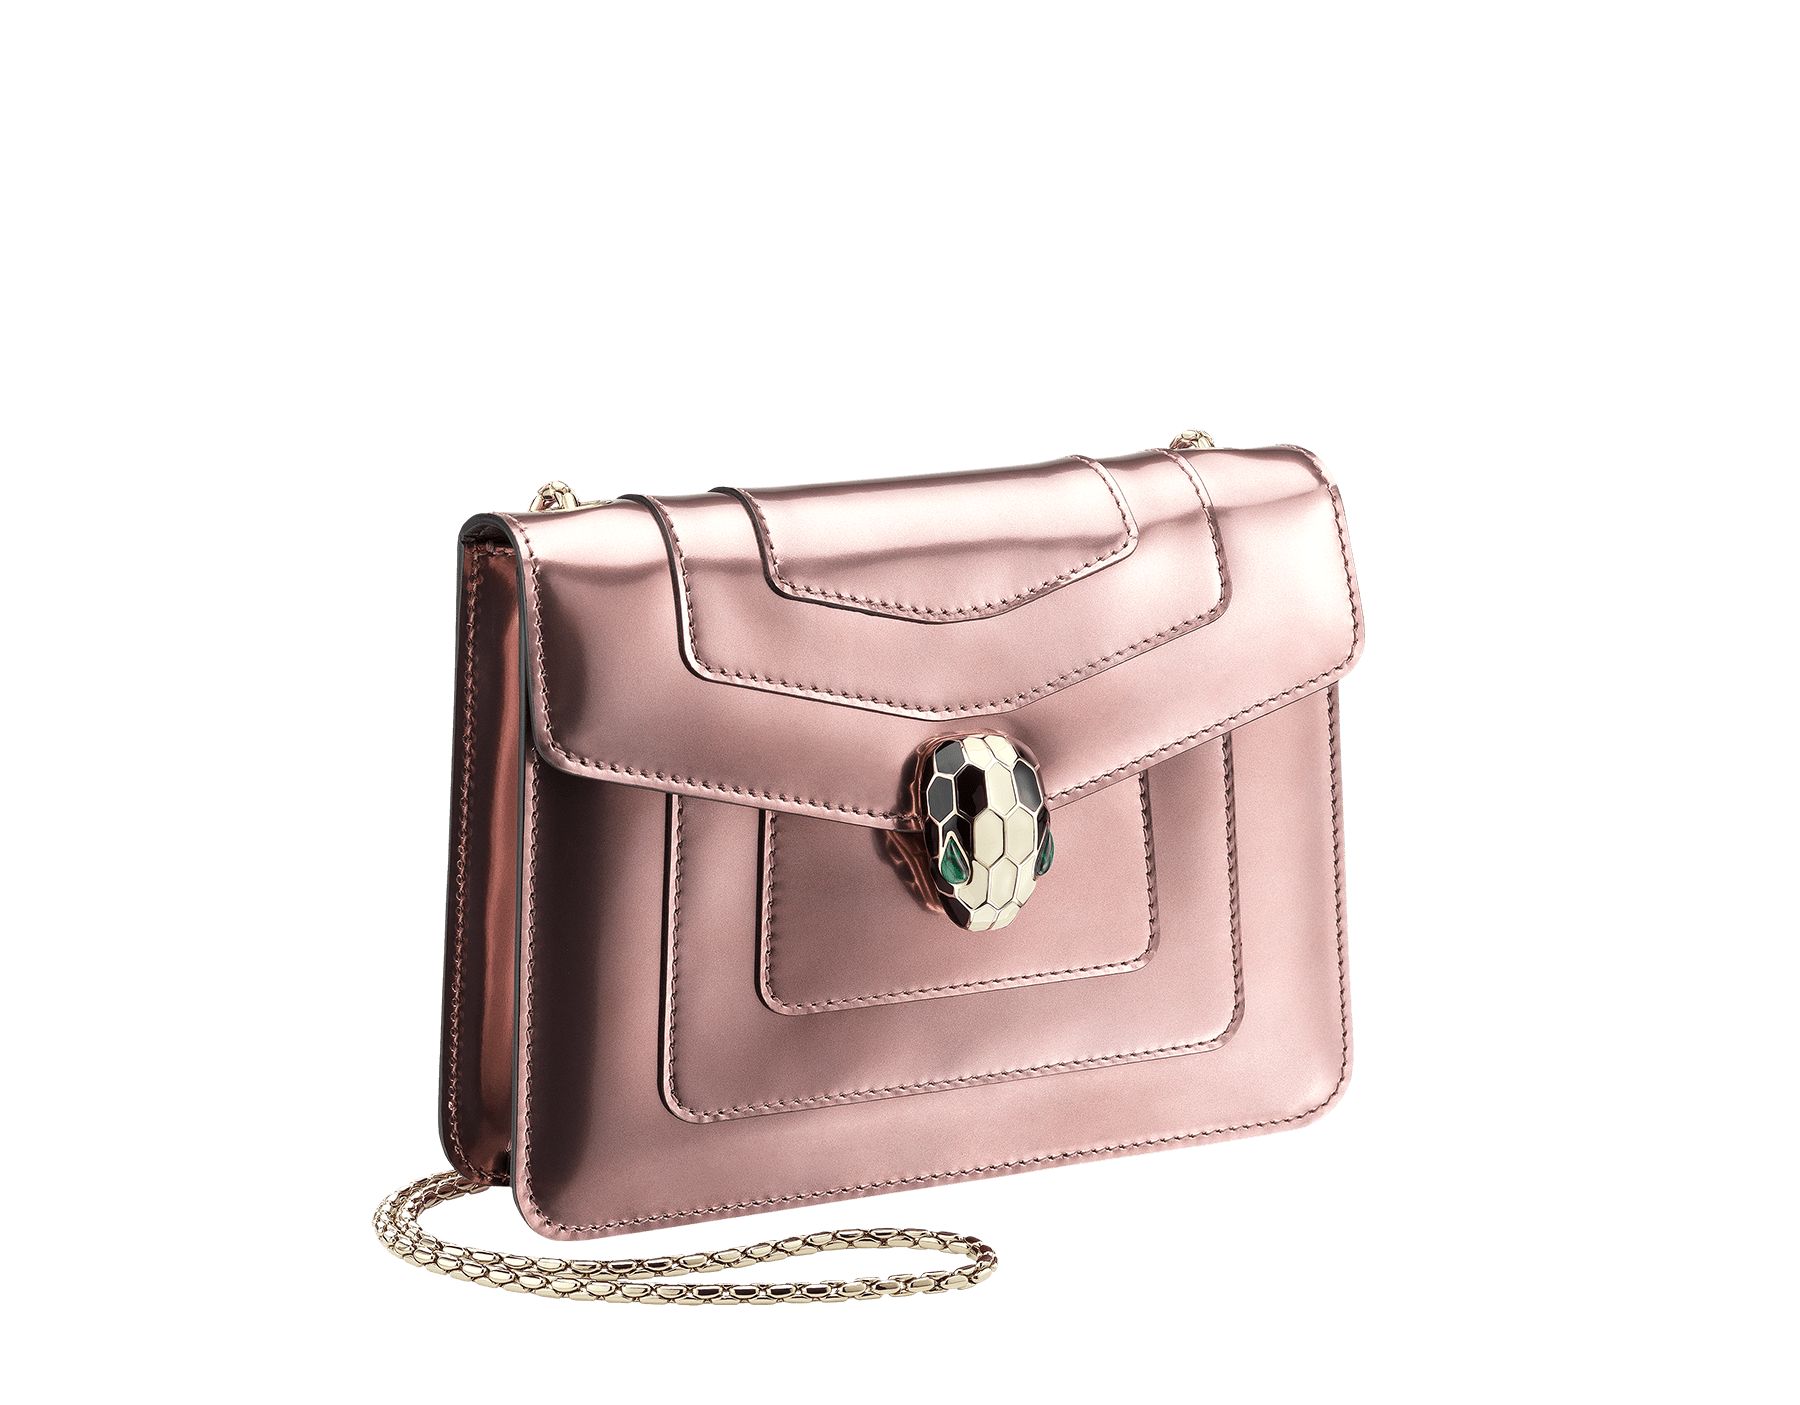 Flap cover bag Serpenti Forever in rose quartz brushed metallic calf leather. Brass light gold plated tempting snake head closure in black and white enamel, with eyes in green malachite. 284800 image 2